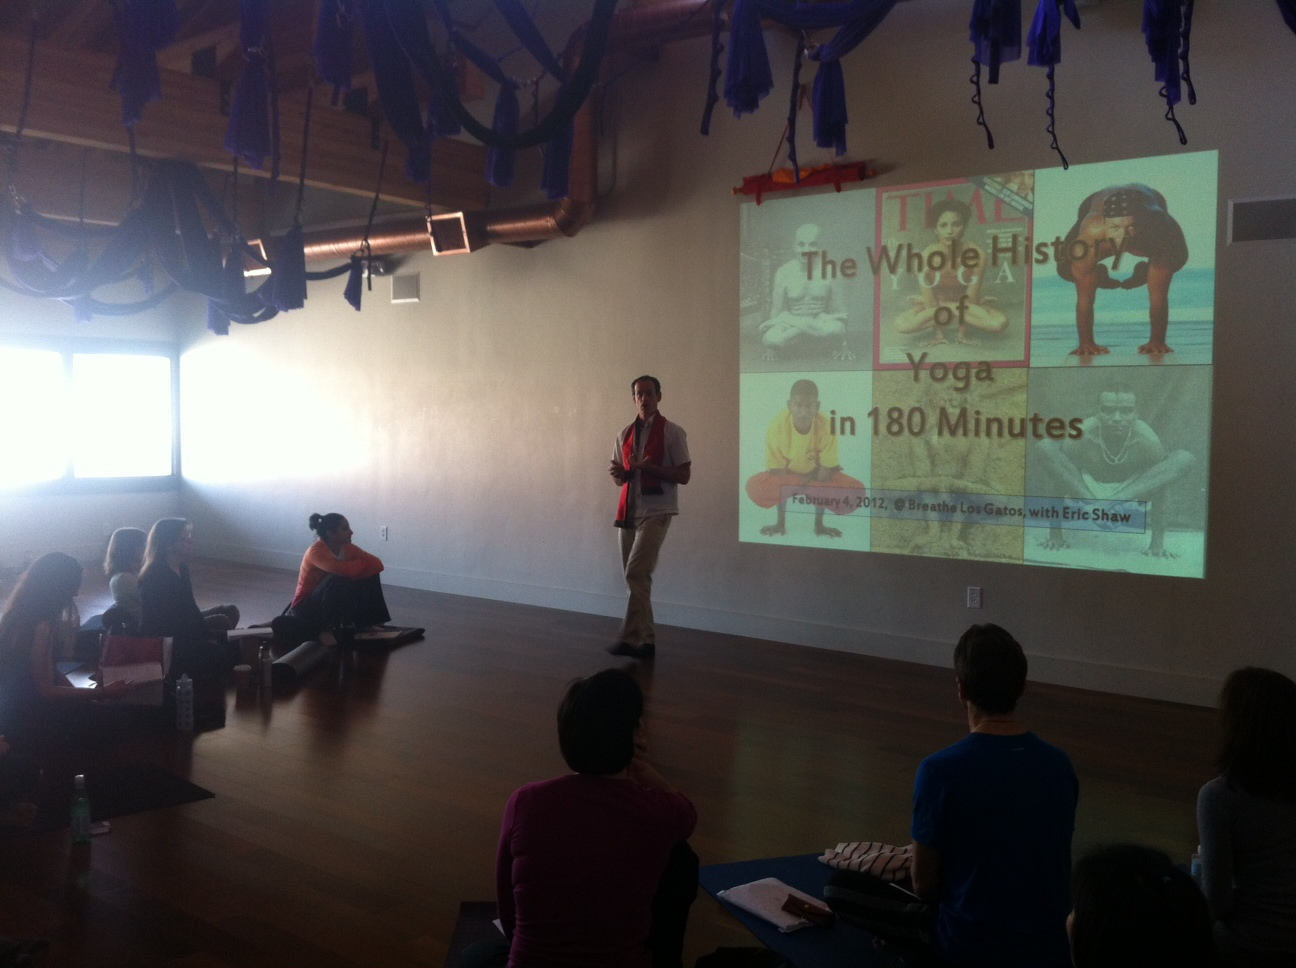 A ONE-MONTH, 200-HOUR TEACHER TRAINING WITH LES LEVENTHAL